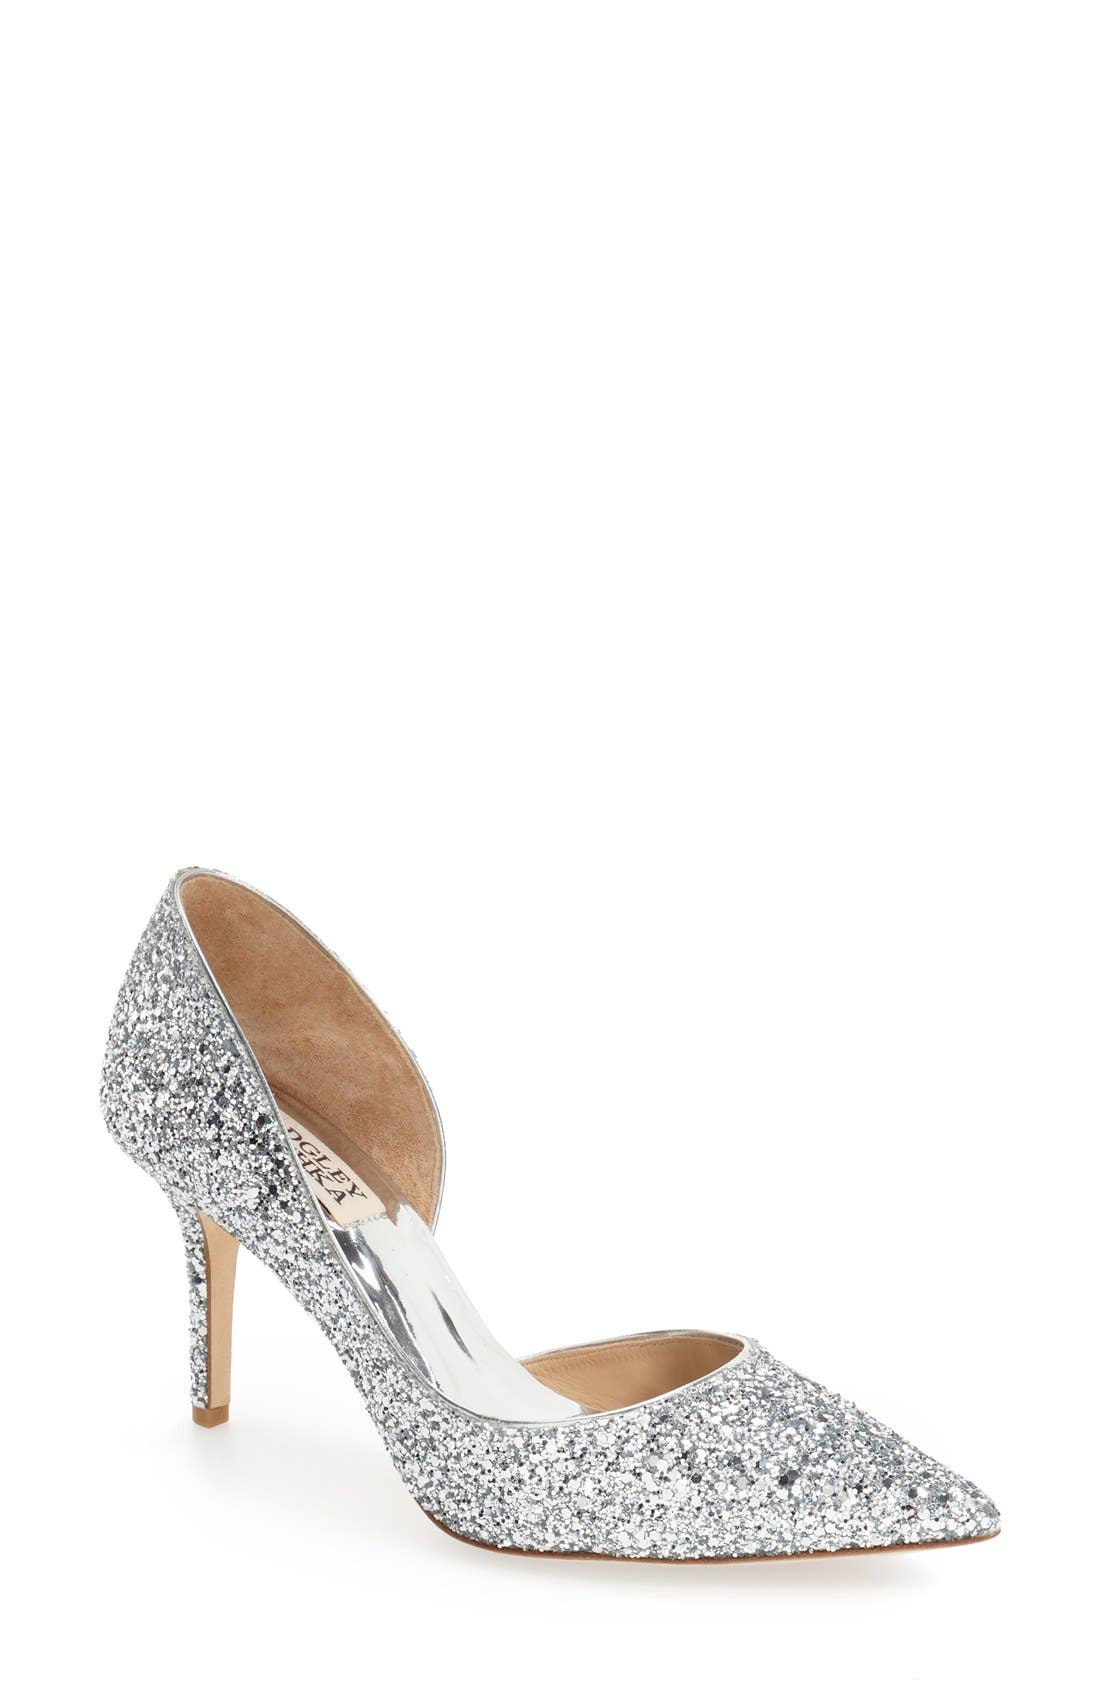 'Daisy' Embellished Pointy Toe Pump,                             Main thumbnail 1, color,                             Silver Glitter Fabric